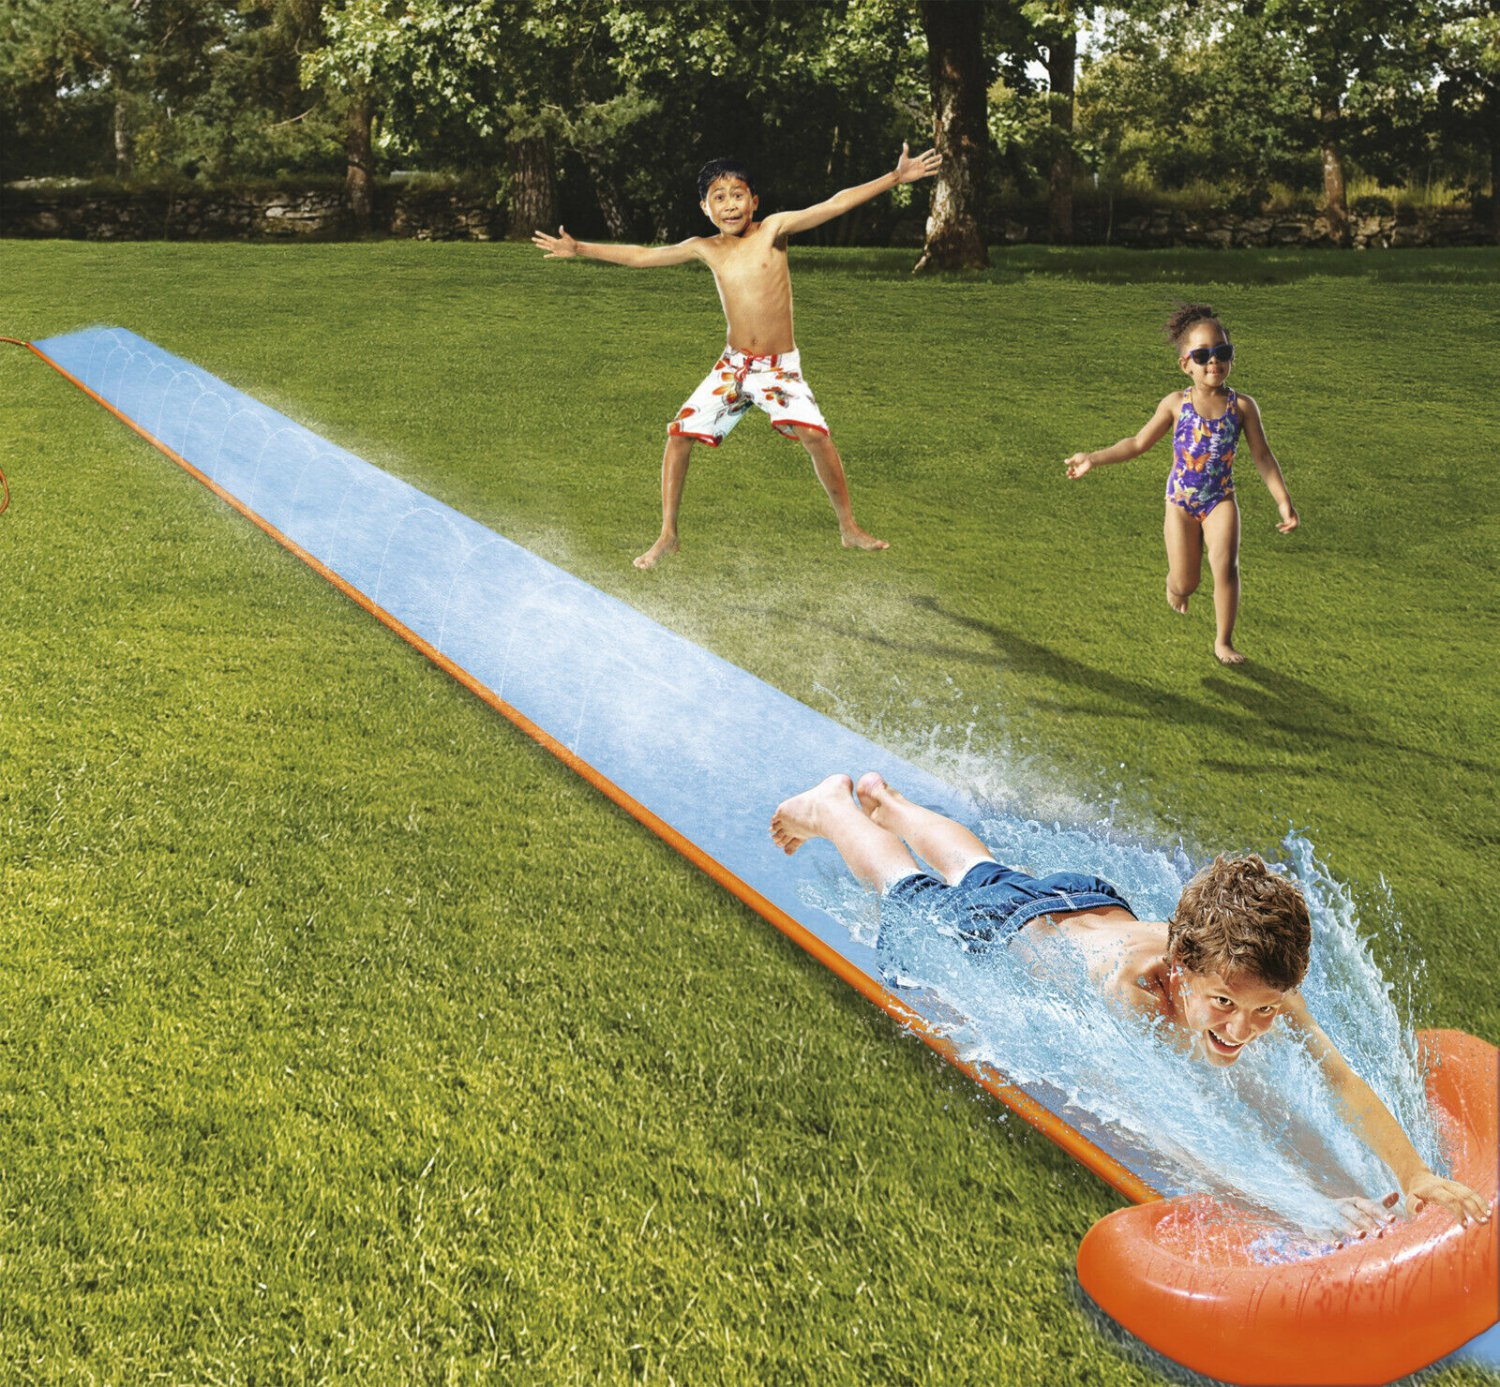 Single Super Water Slide for kids and adults Summer Wet and Wild Yard Pool